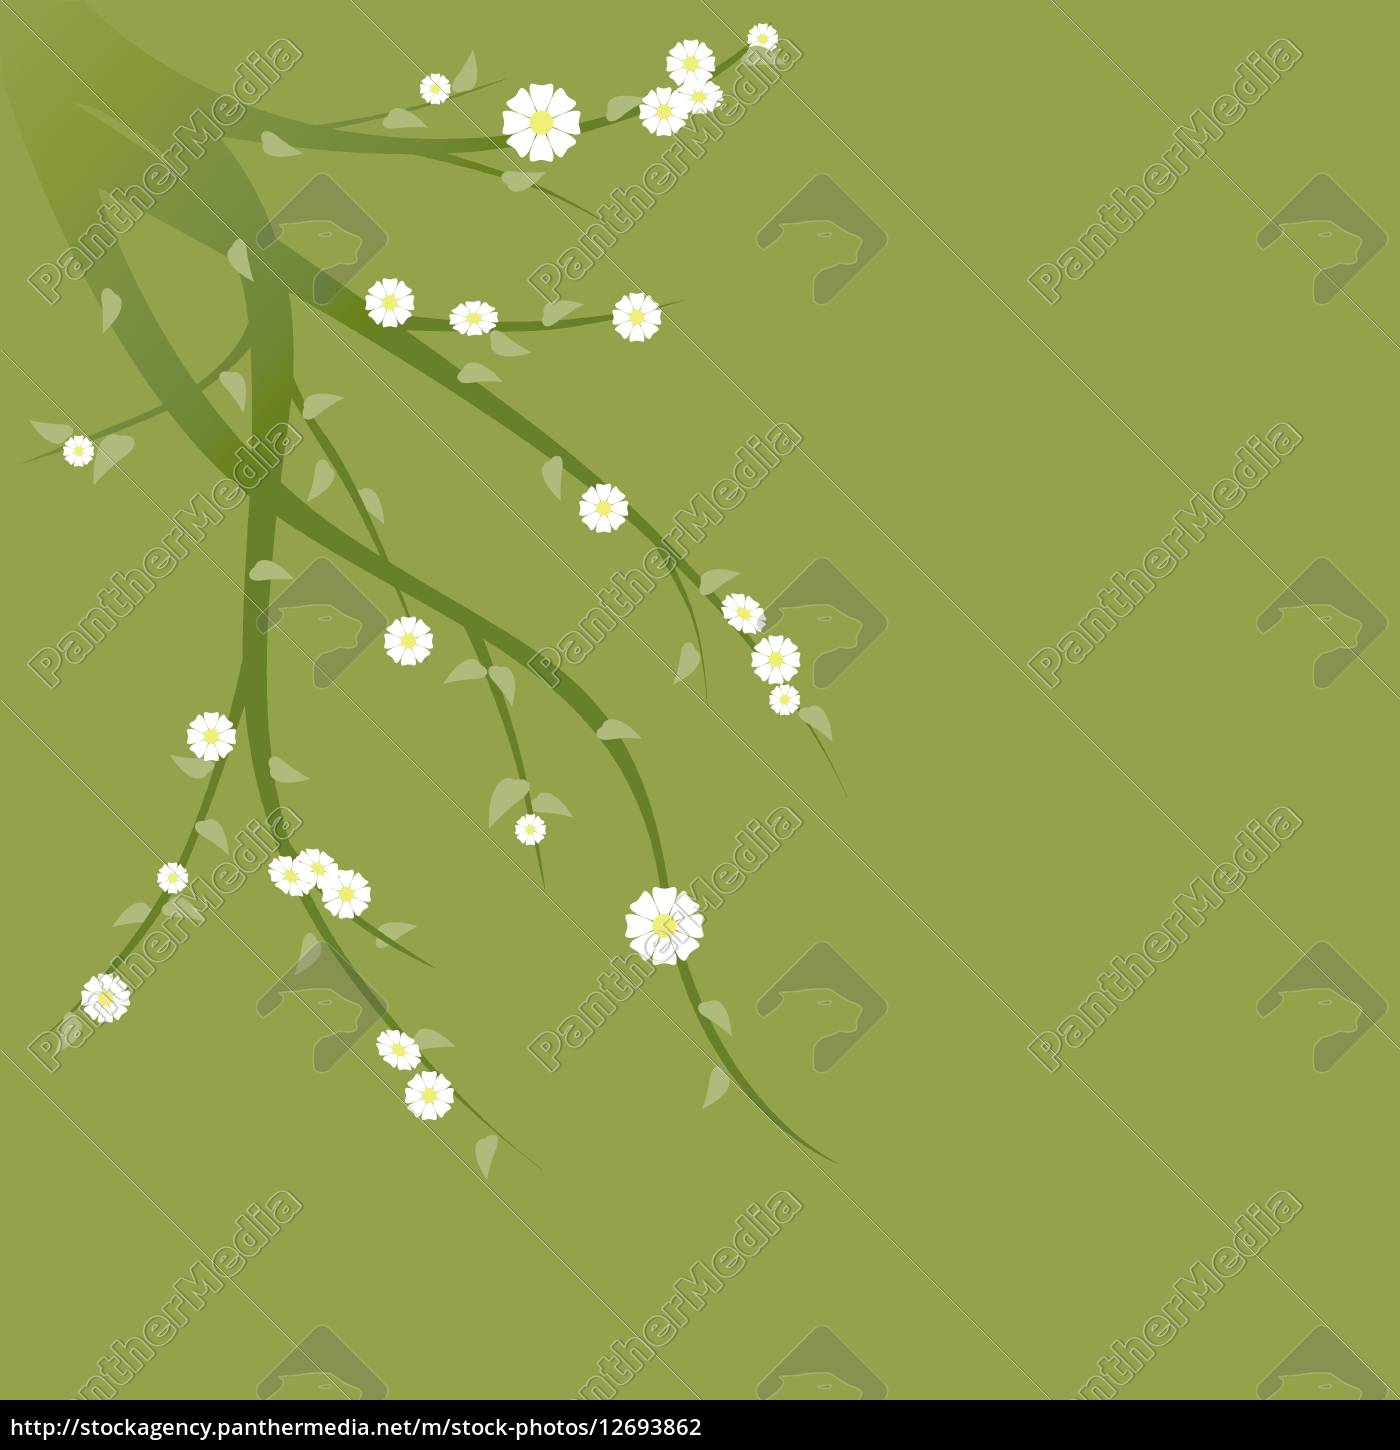 flowering, green, branches - 12693862